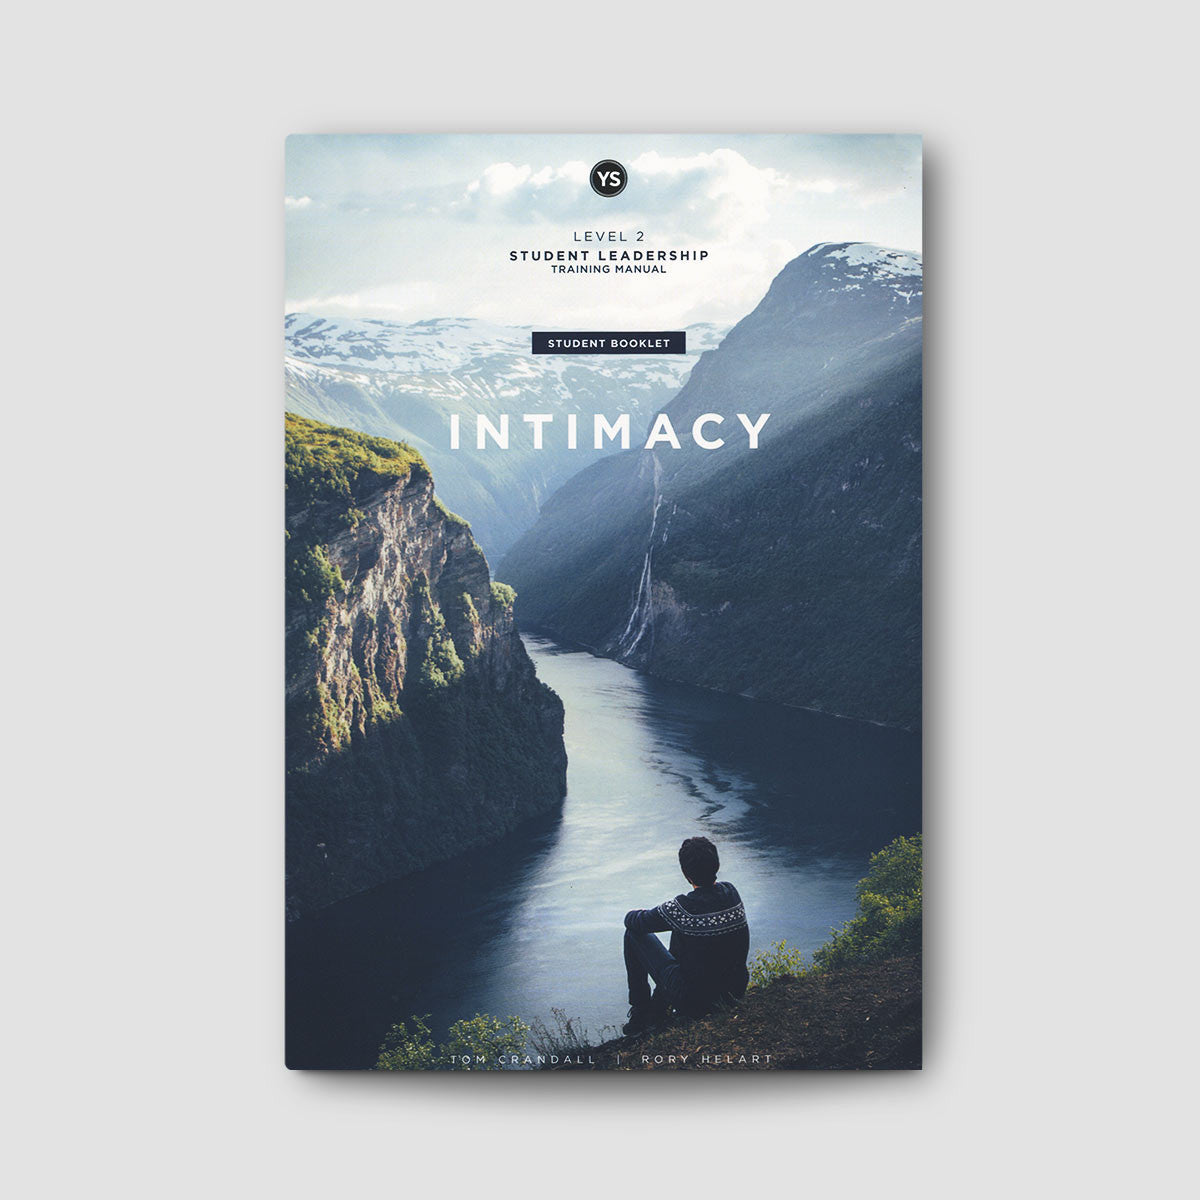 Student Leadership Team (SLT) Manual Level 2: Intimacy - Teachers Manual